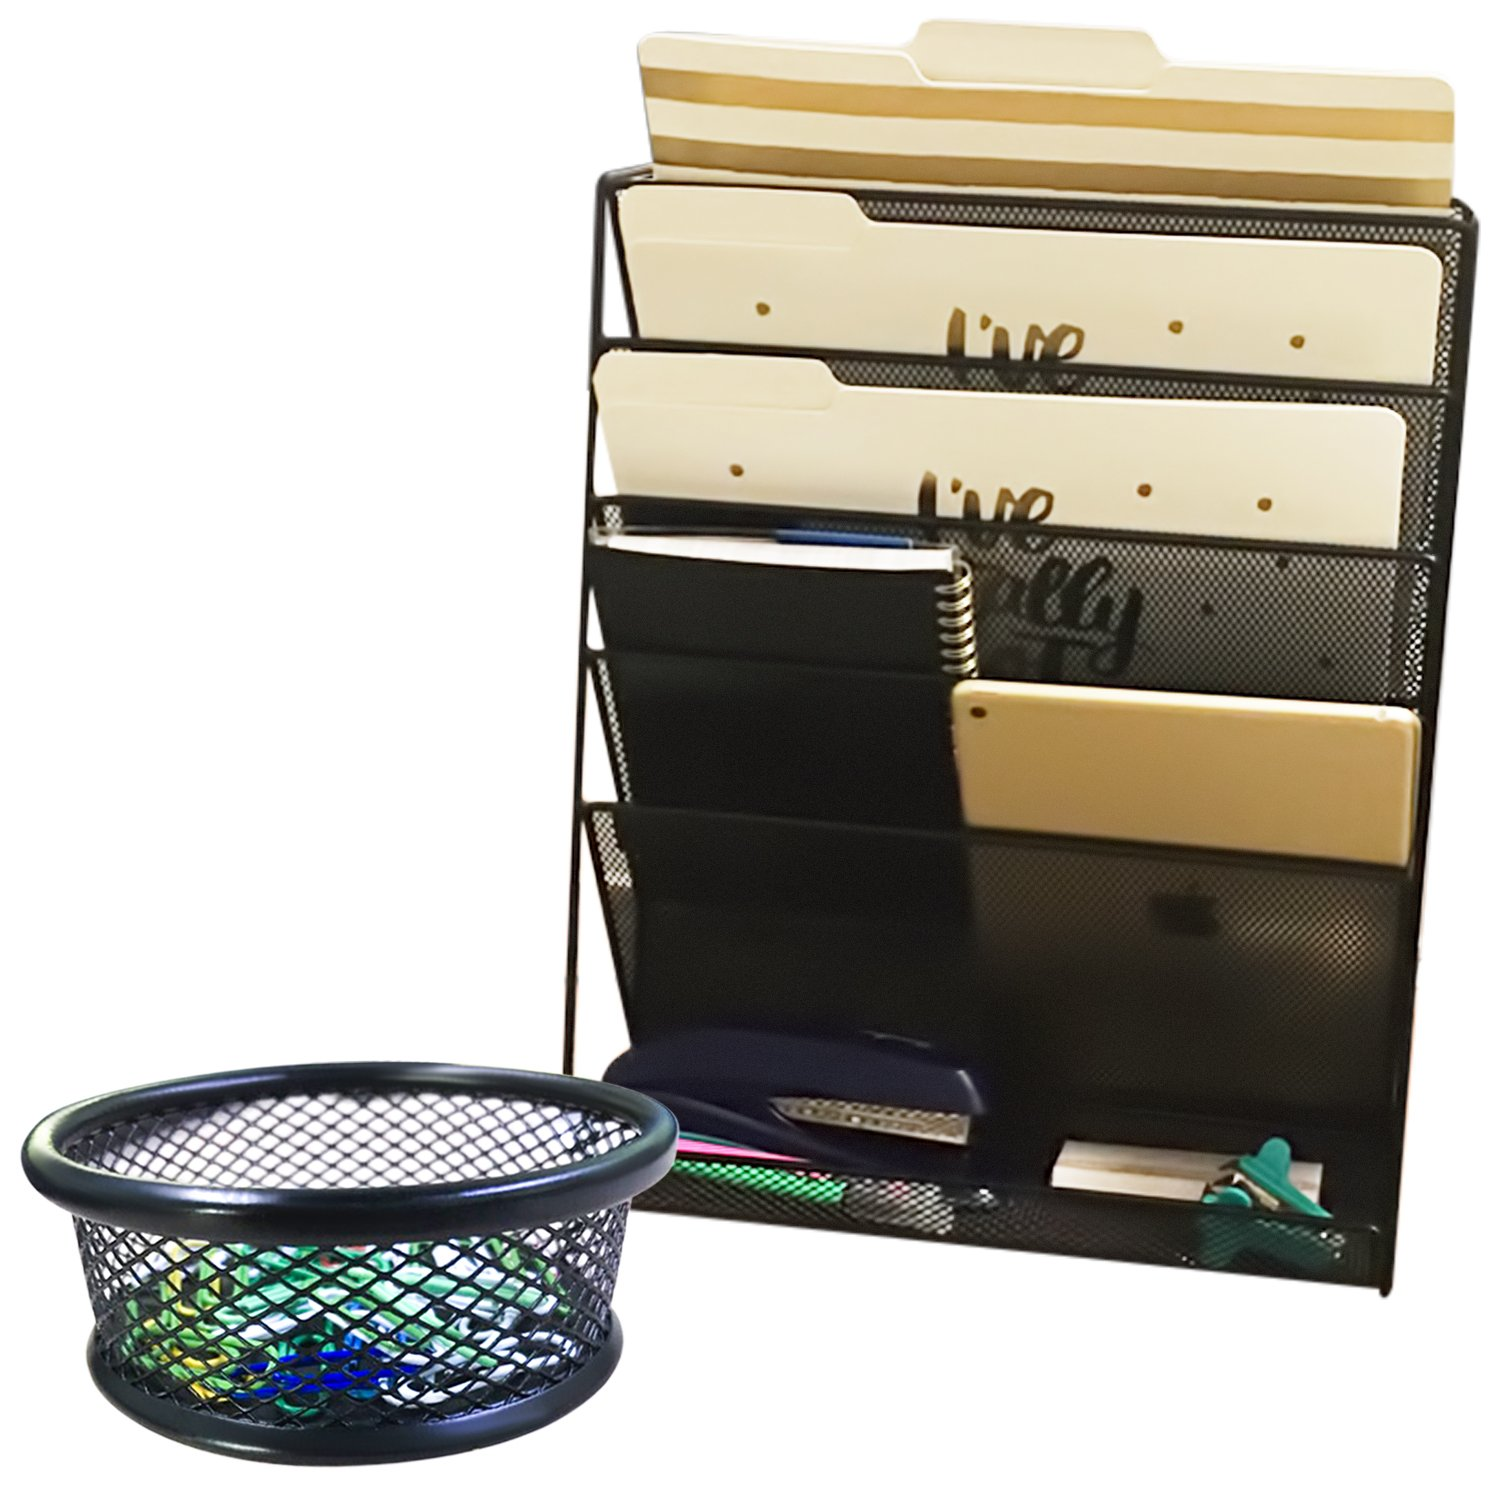 Hanging Mesh Wall Metal File Holder/Organizer, Including Matching Wire Paper Clip Holder Plus Bonus Paper Clips